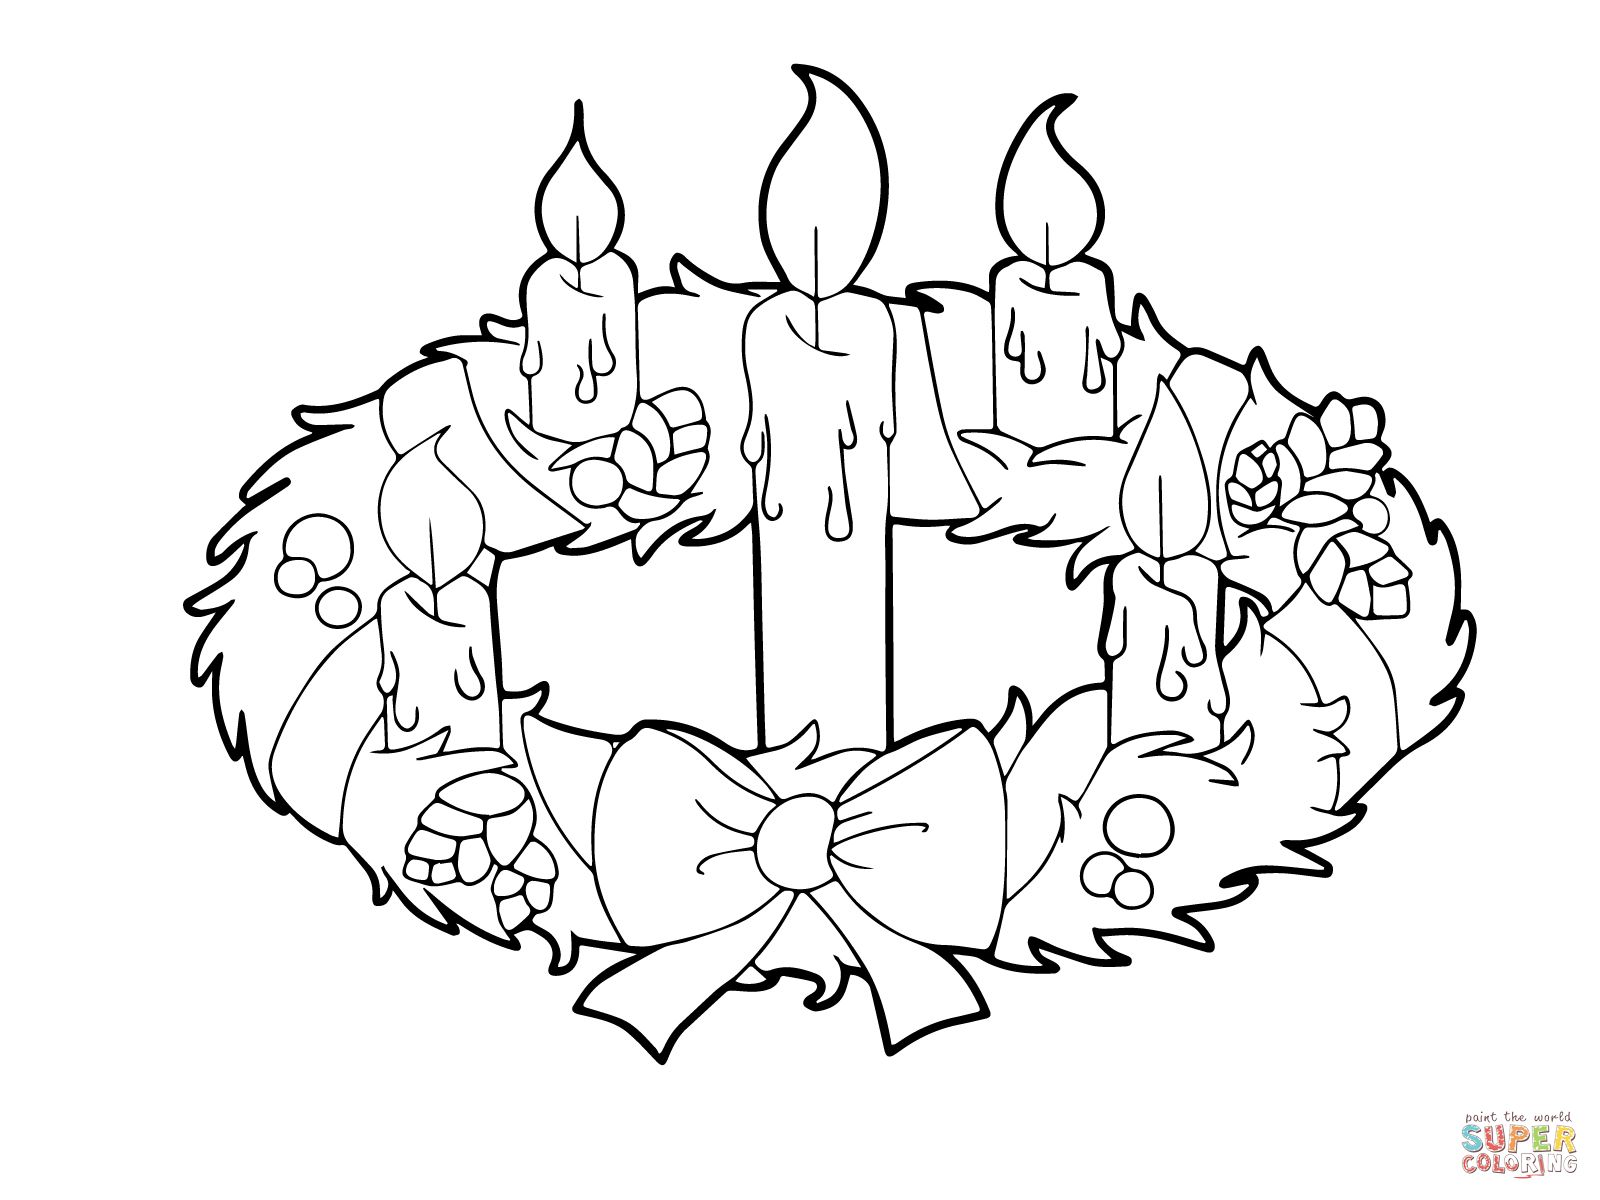 Advent Wreath and Candles Coloring page Free Printable